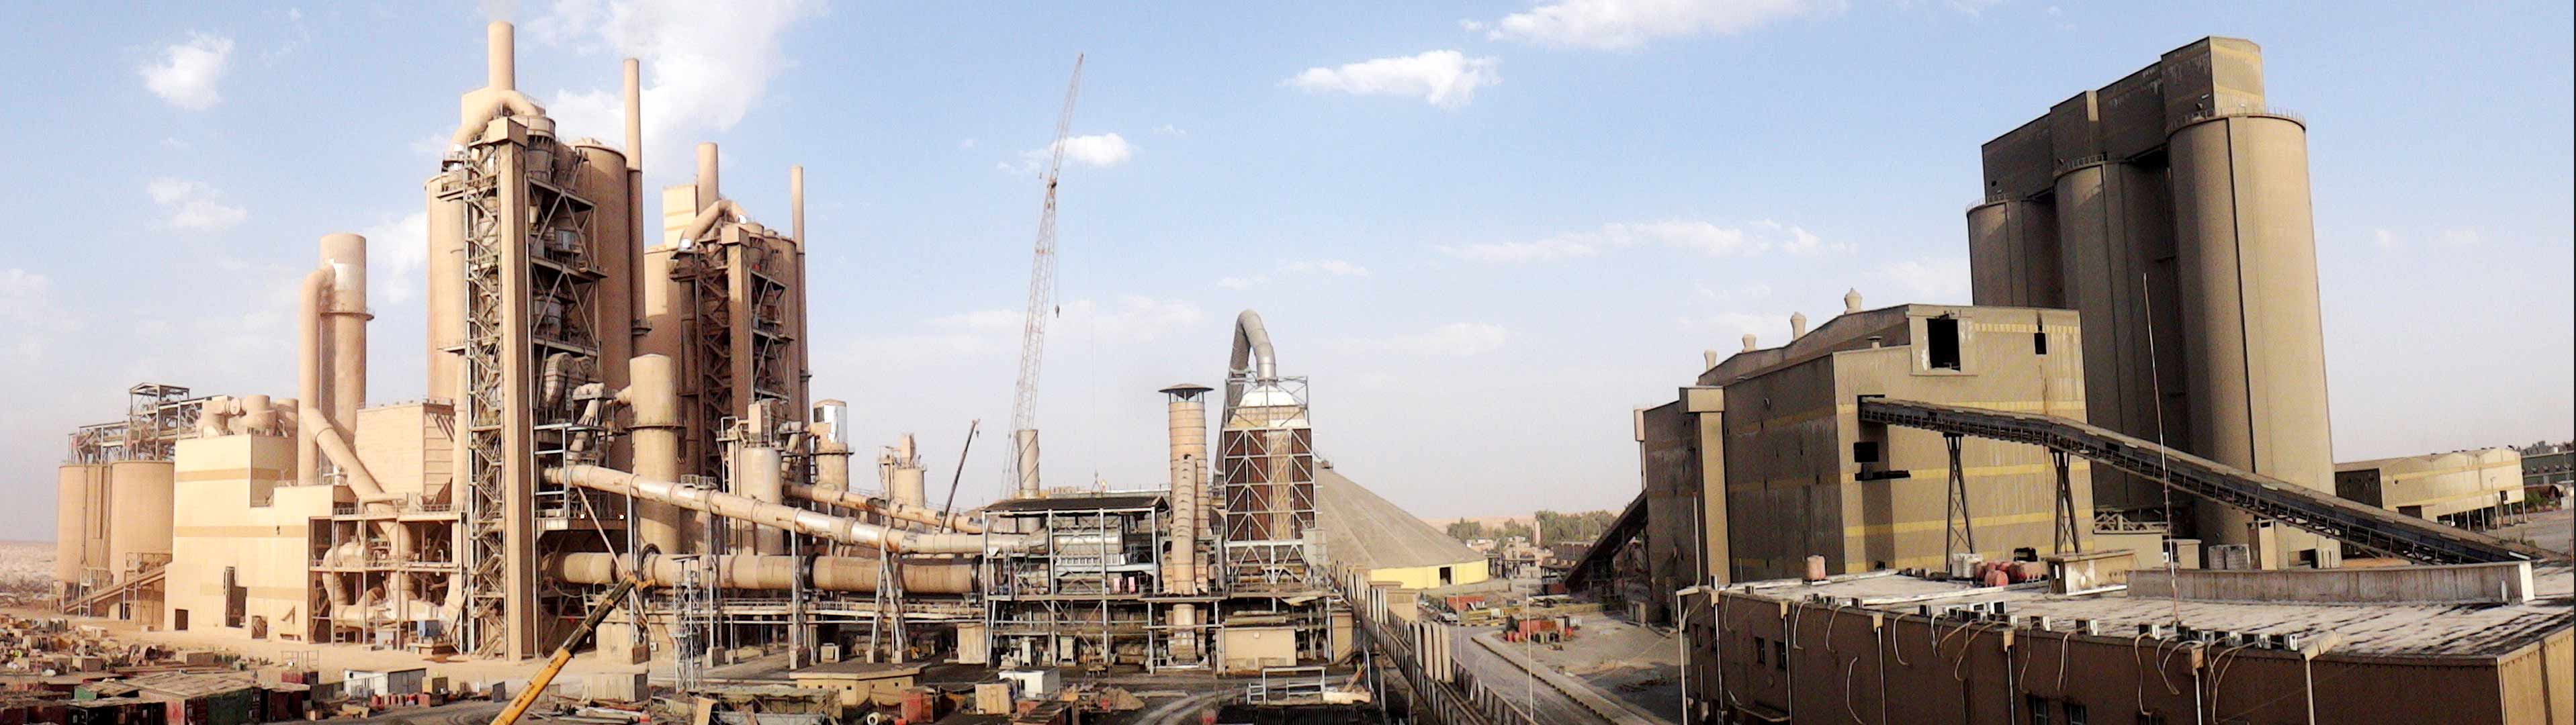 Iraq Karbala 3000t/d Cement Plant Rehabilitation Project